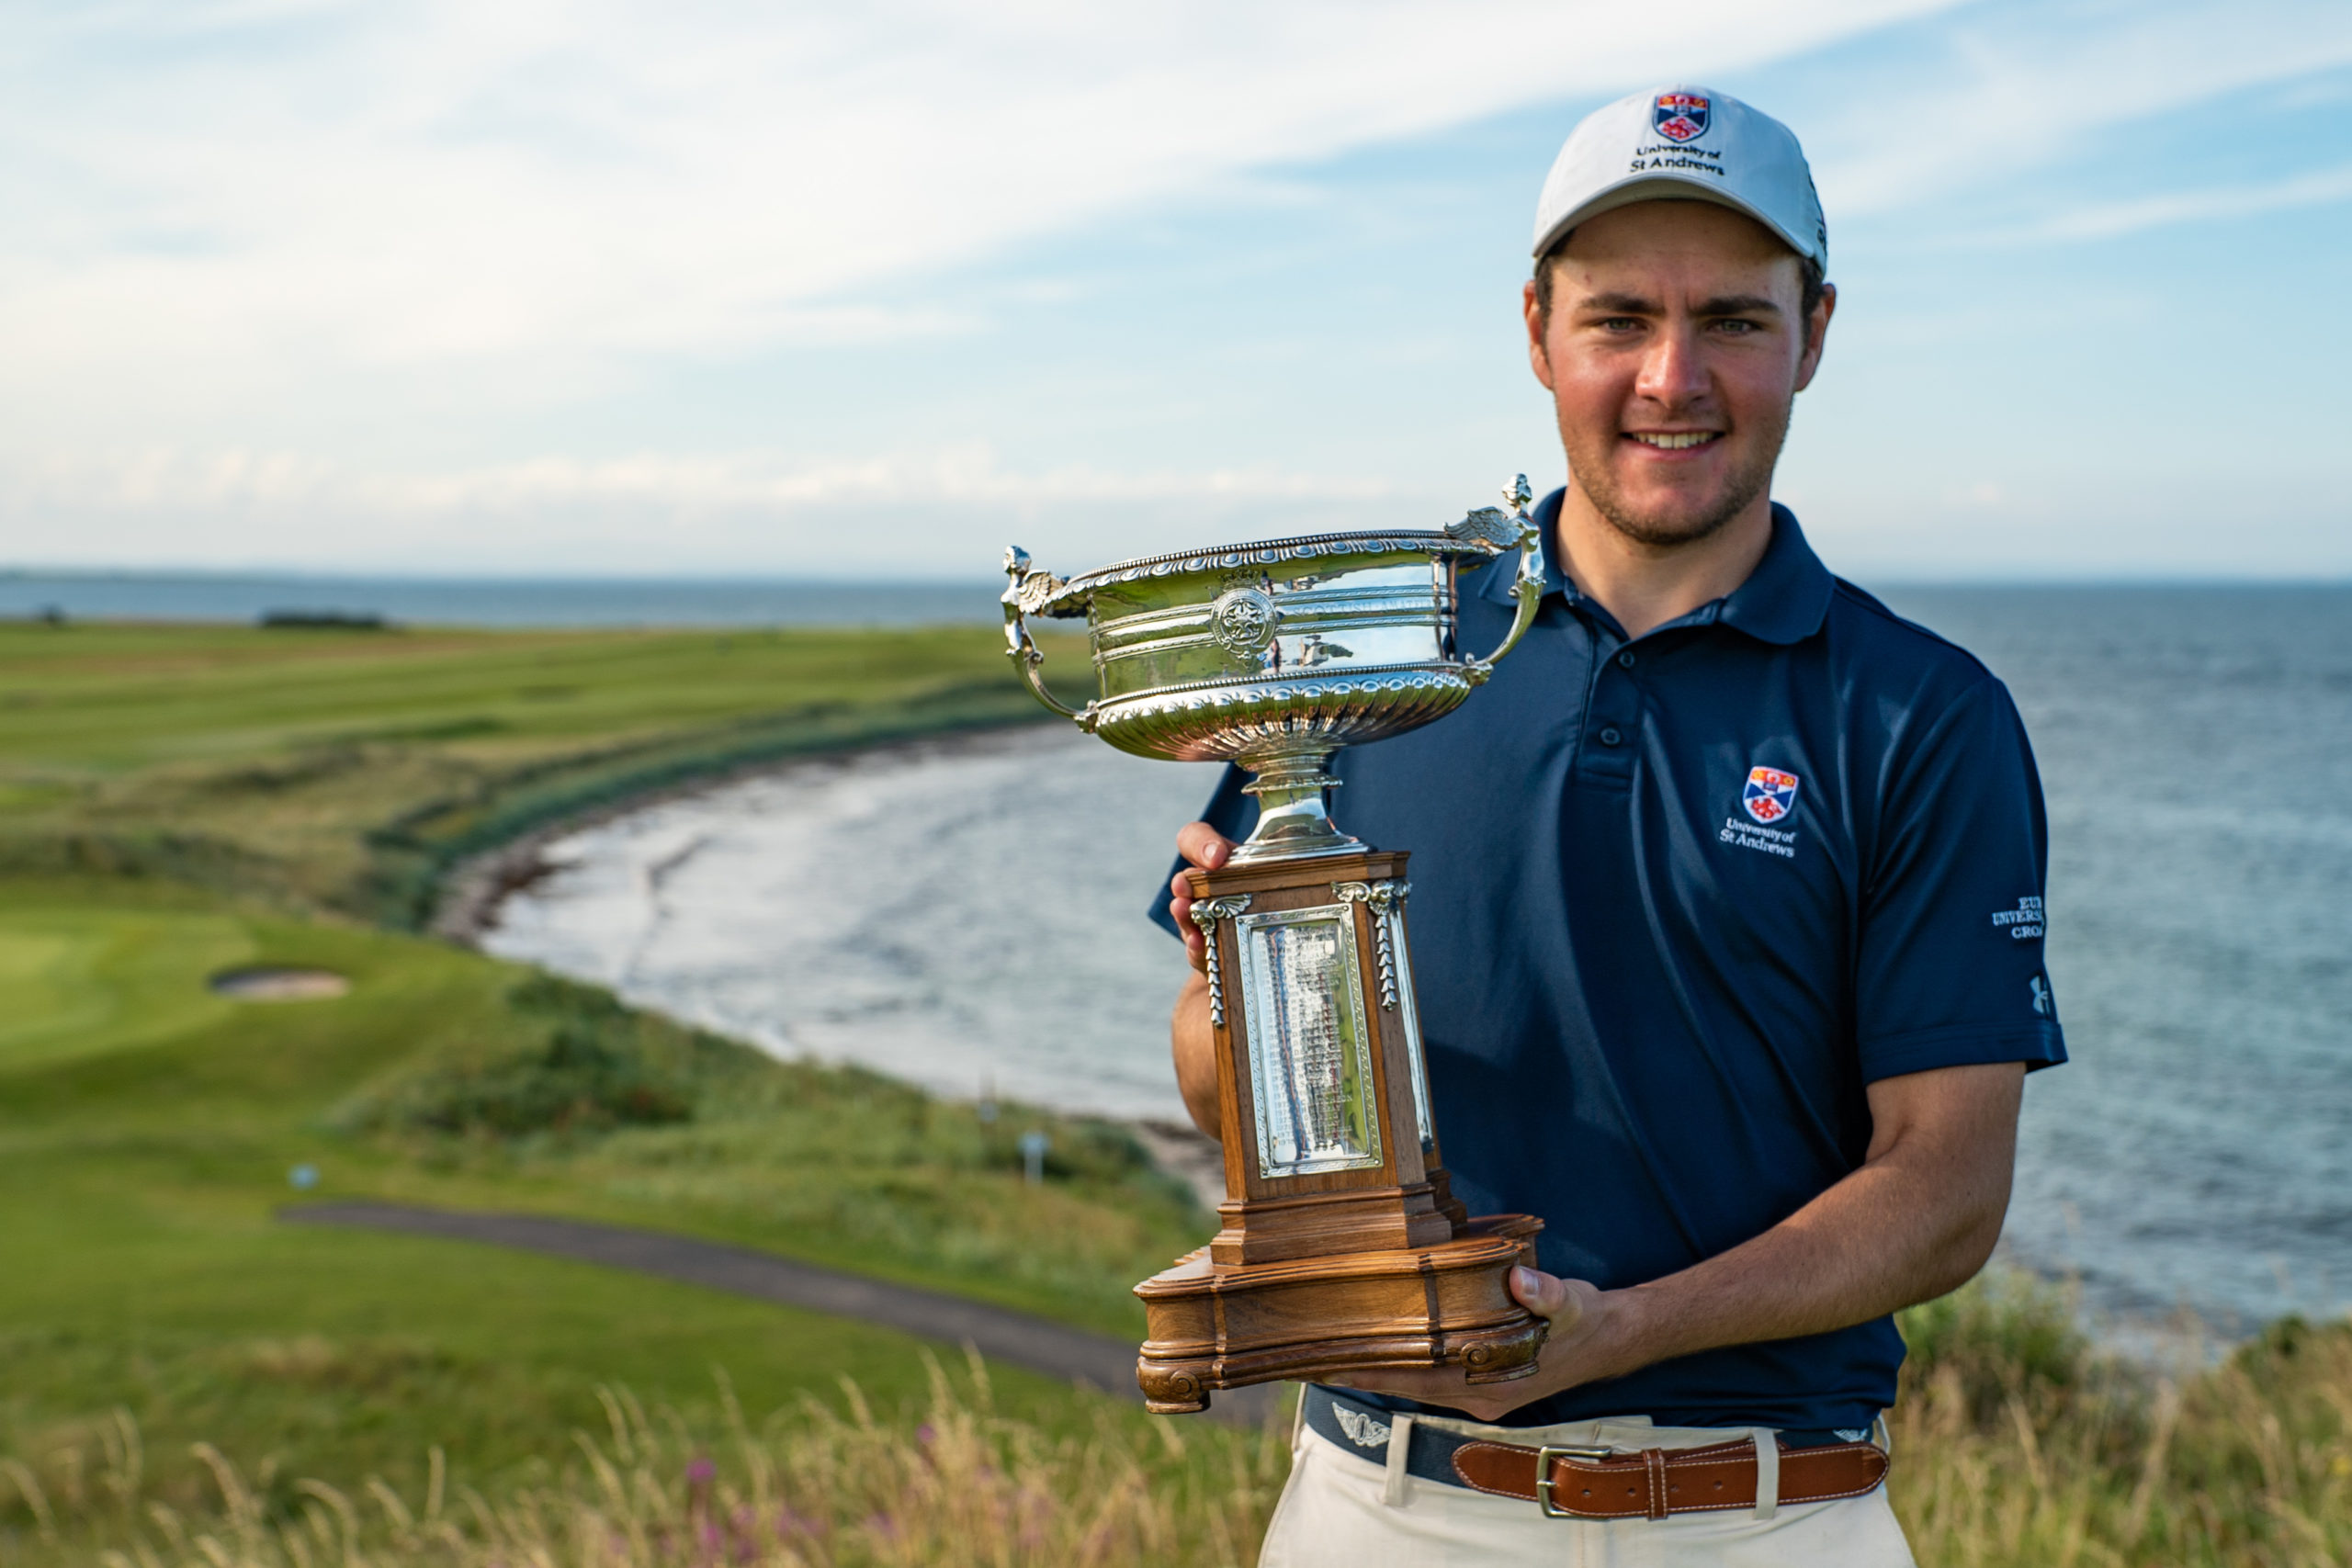 Scottish Golf needs to focus on primary activities like the Scottish Amateur Championship, won by George Burns at Crail in 2019.